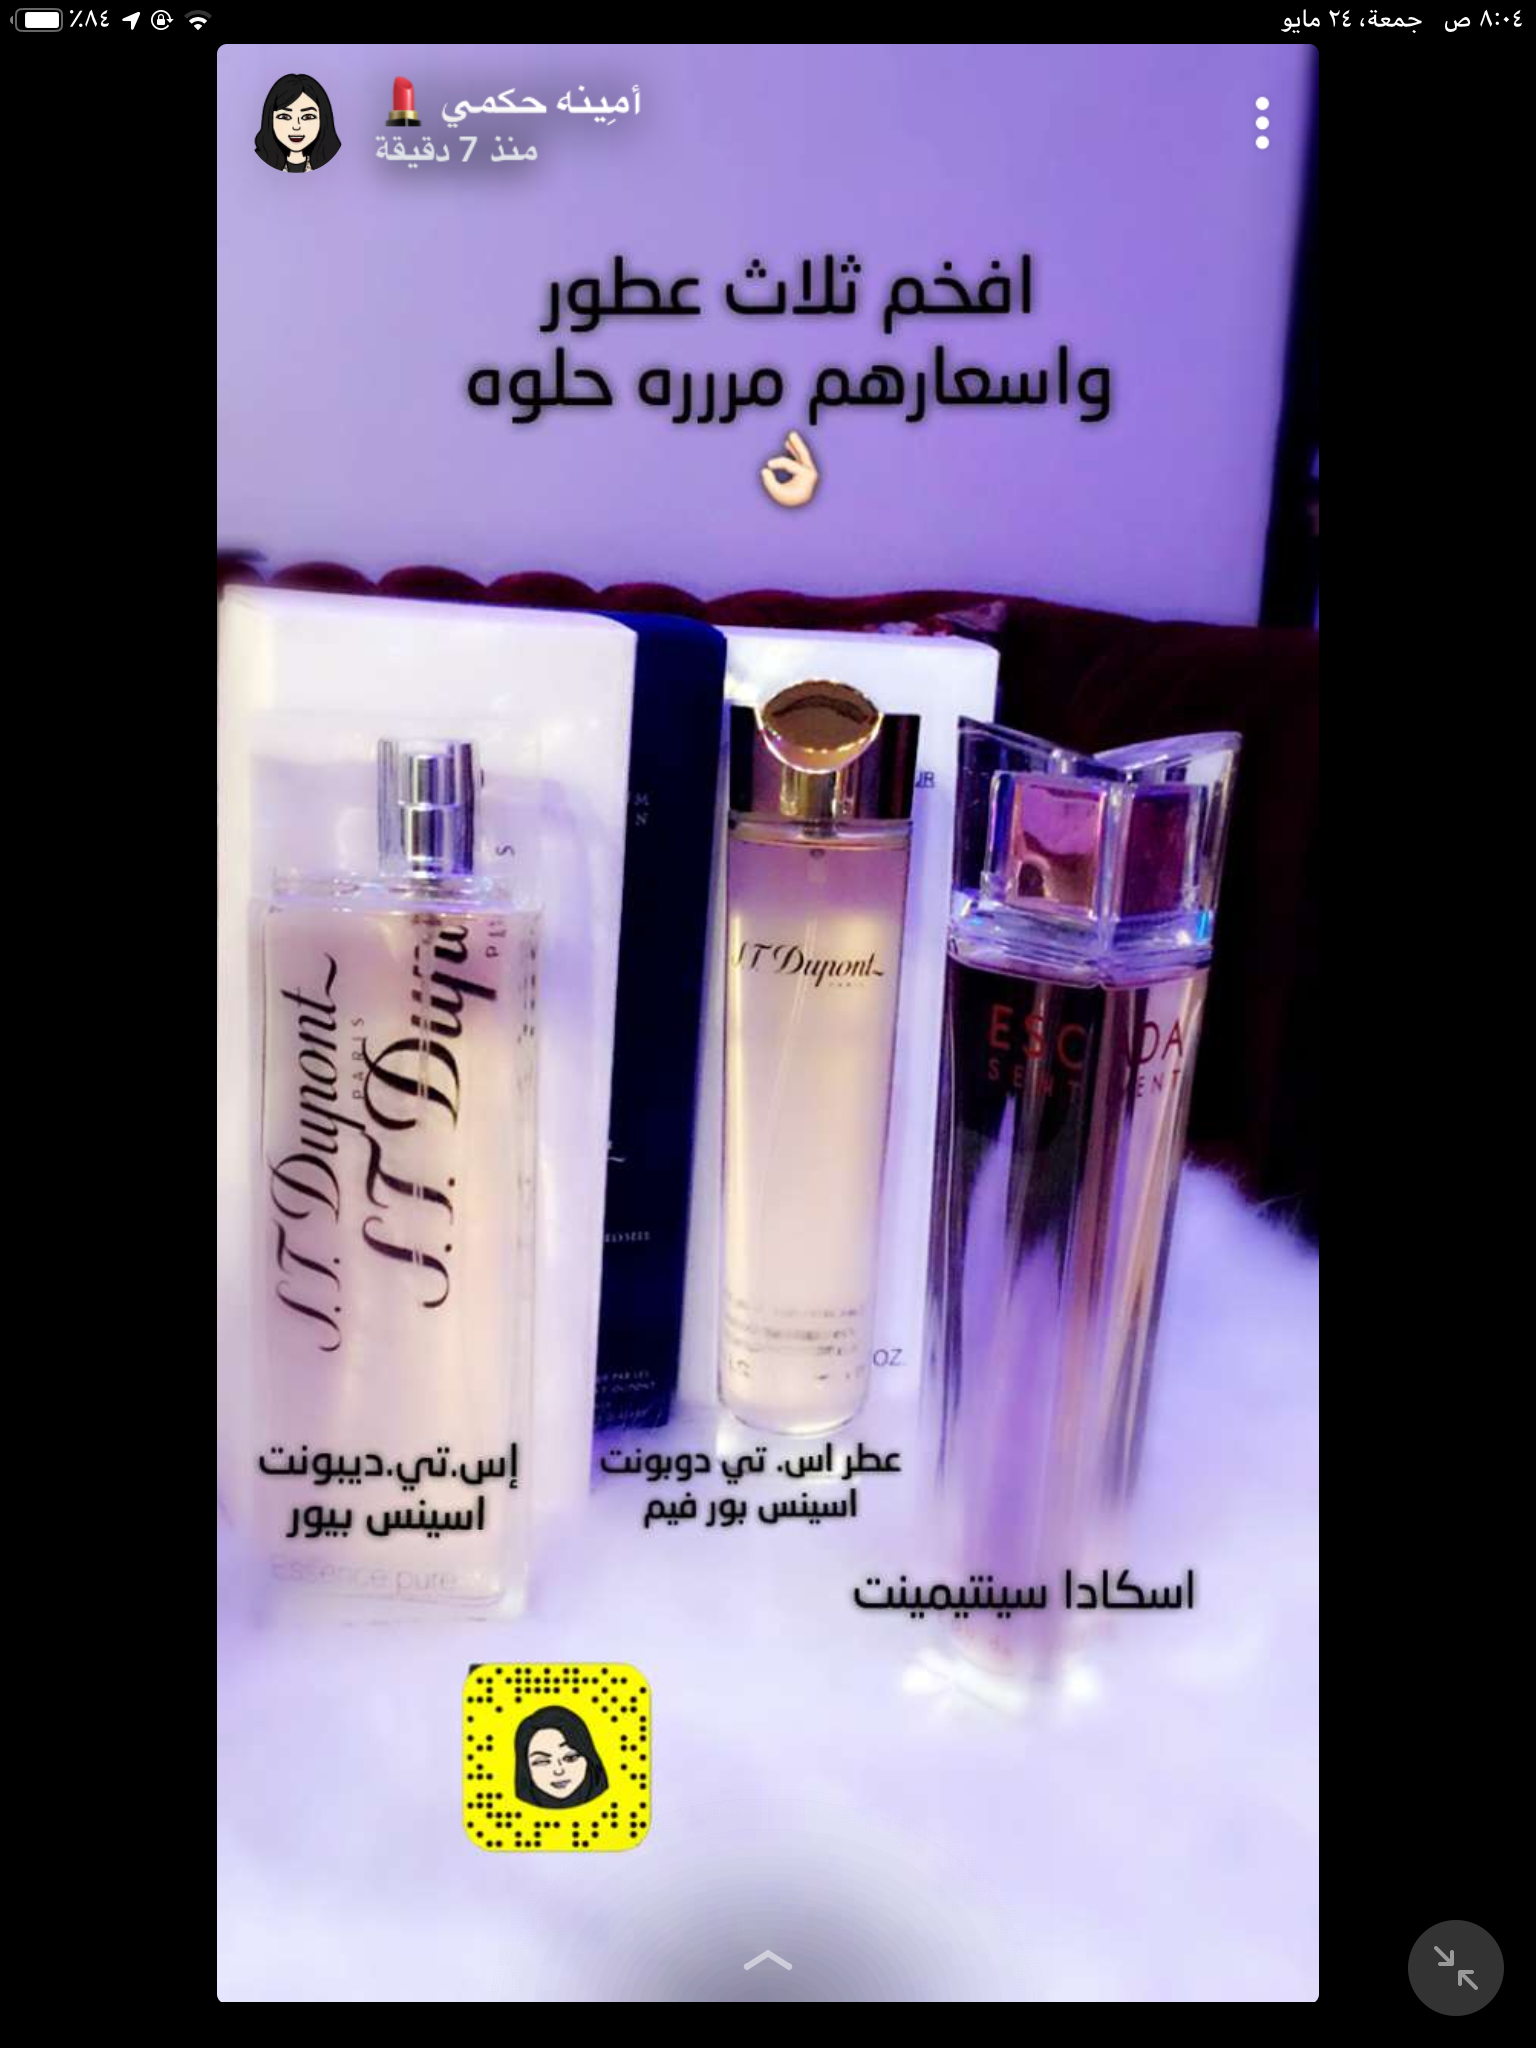 Pin By امينه حكمي Aminh On عطور بروفيوم تواليت بارفان Convenience Store Products Convenience Store